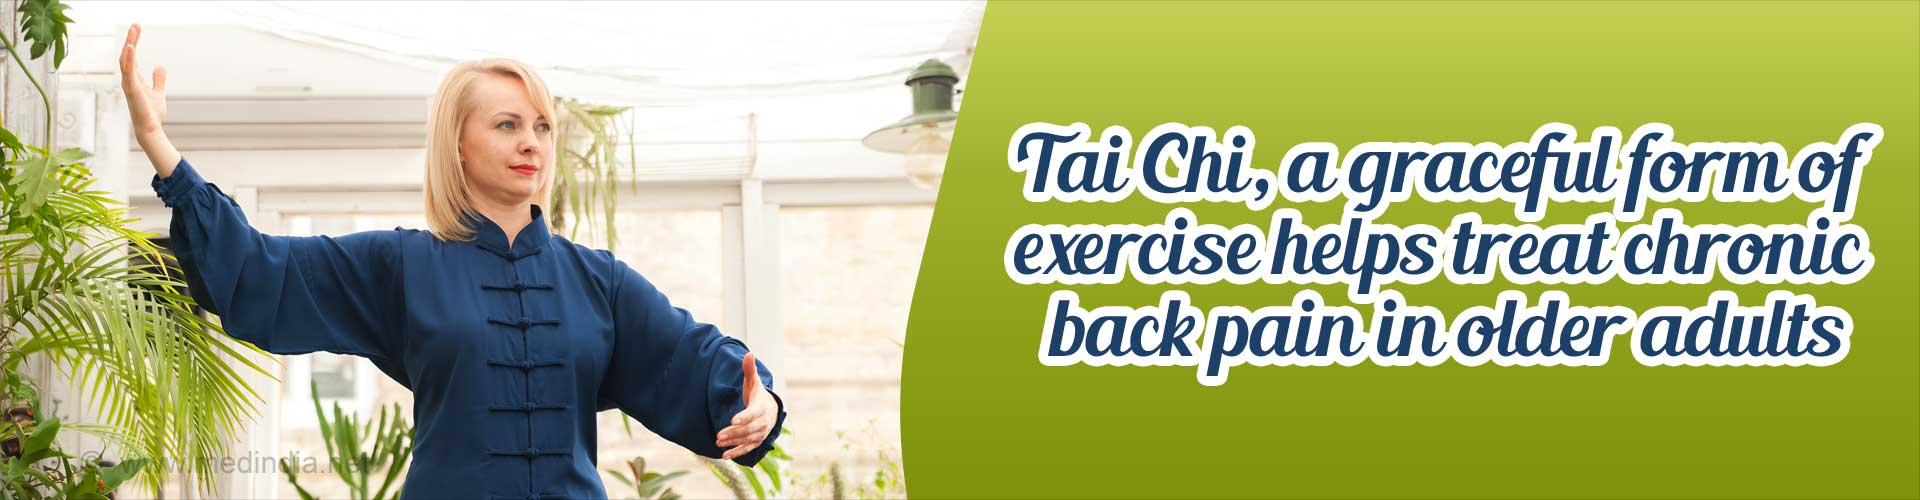 T'ai Chi can Treat Chronic Low Back Pain in Older Adults